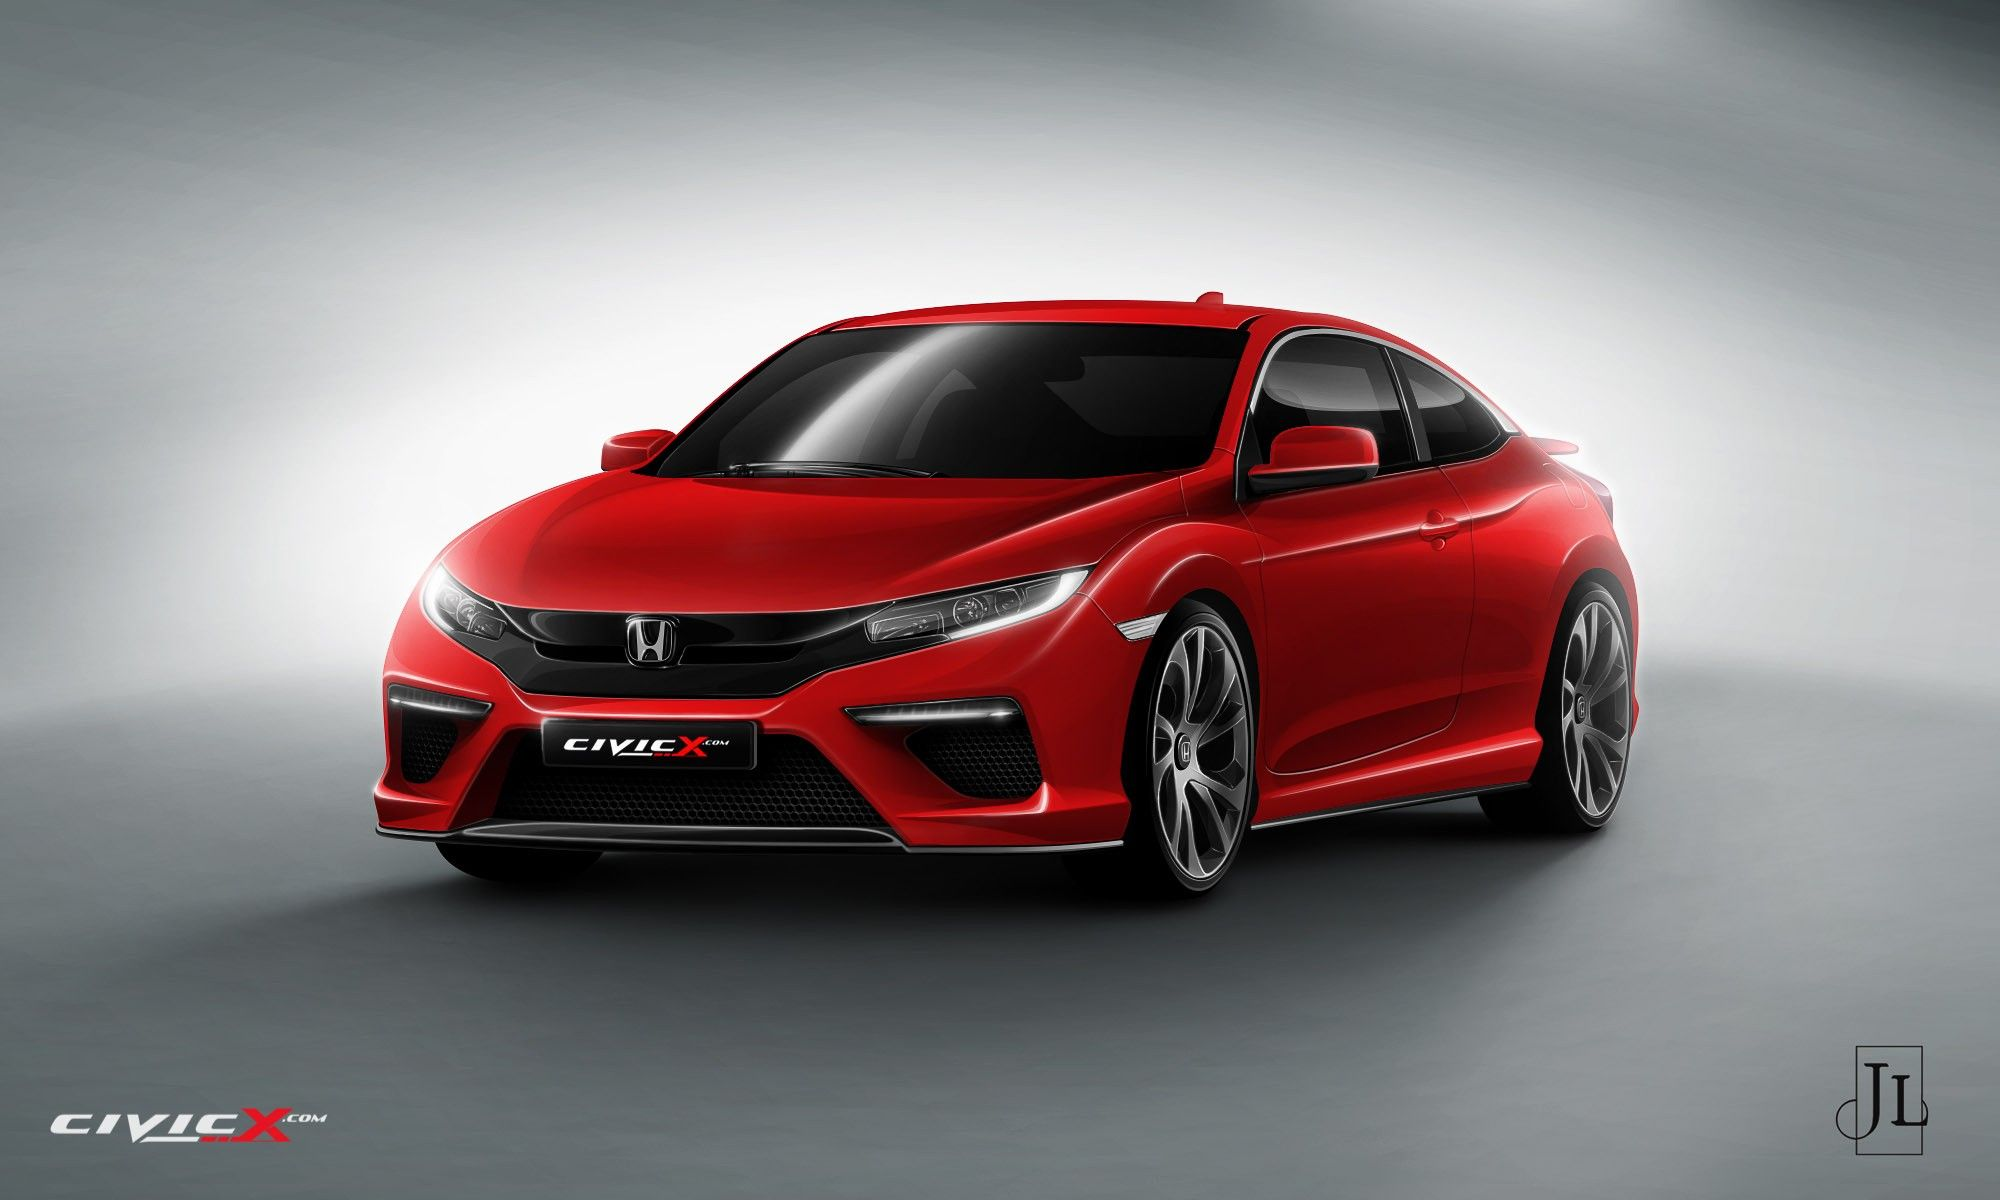 2017 Honda Civic Coupe Rendered In Vanilla And Super Hot Type R Flavors Photo Gallery 11 Jpg 2000 1200 Honda Civic Coupe Honda Civic New Honda Civic Sport